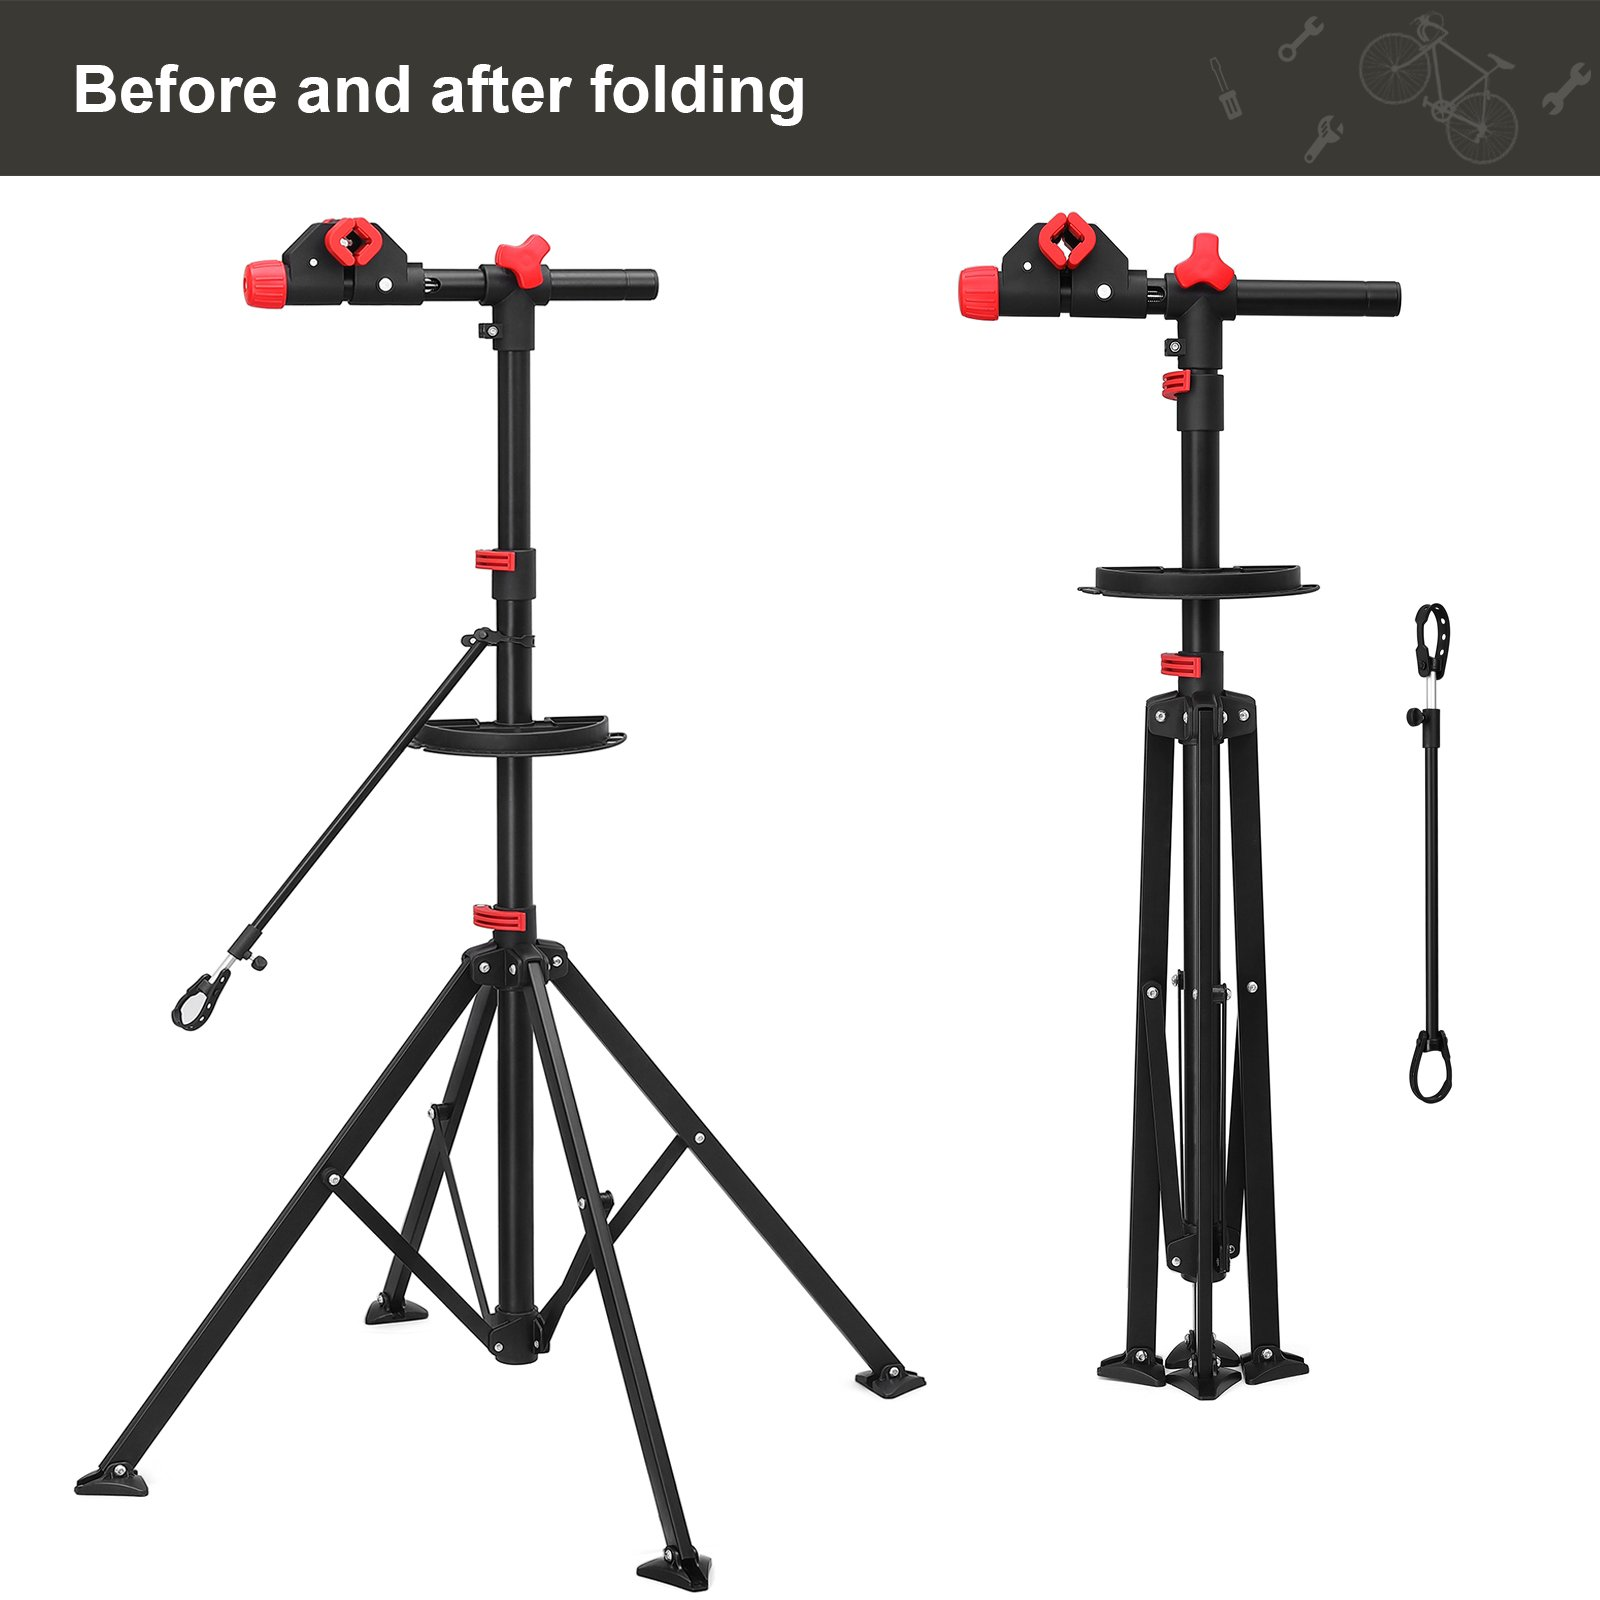 SONGMICS Pro Mechanic Bike Repair Stand with Tool Tray Telescopic Bicycle Maintenance Rack Workstand Lightweight and Portable USBR02B by SONGMICS (Image #9)